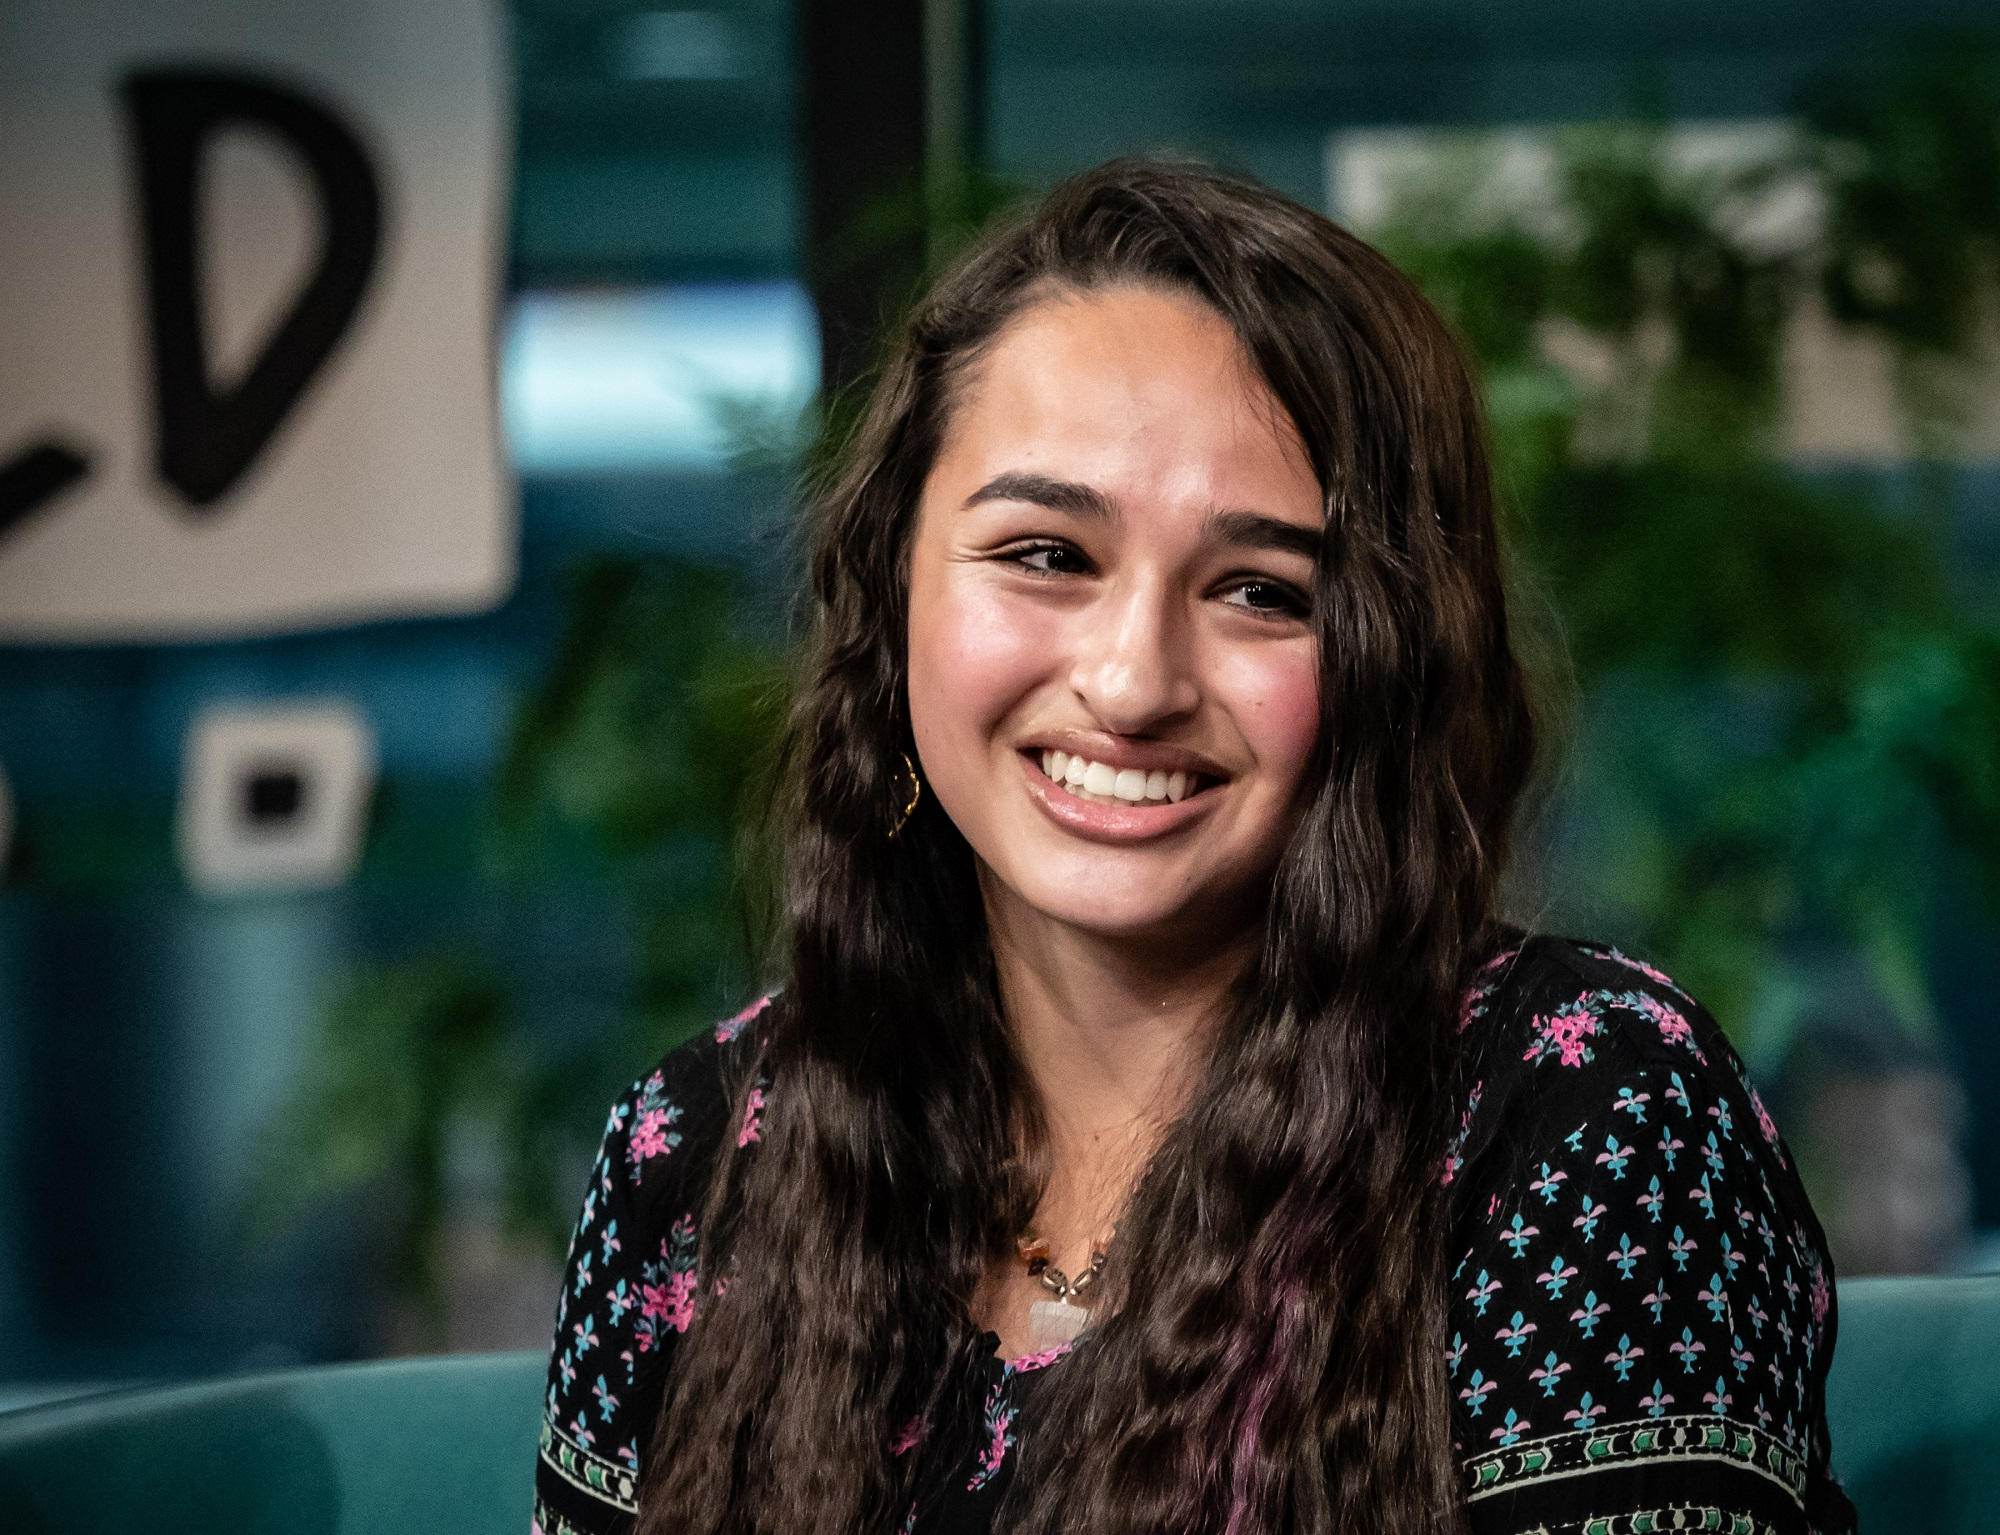 Jazz Jennings of I Am Jazz